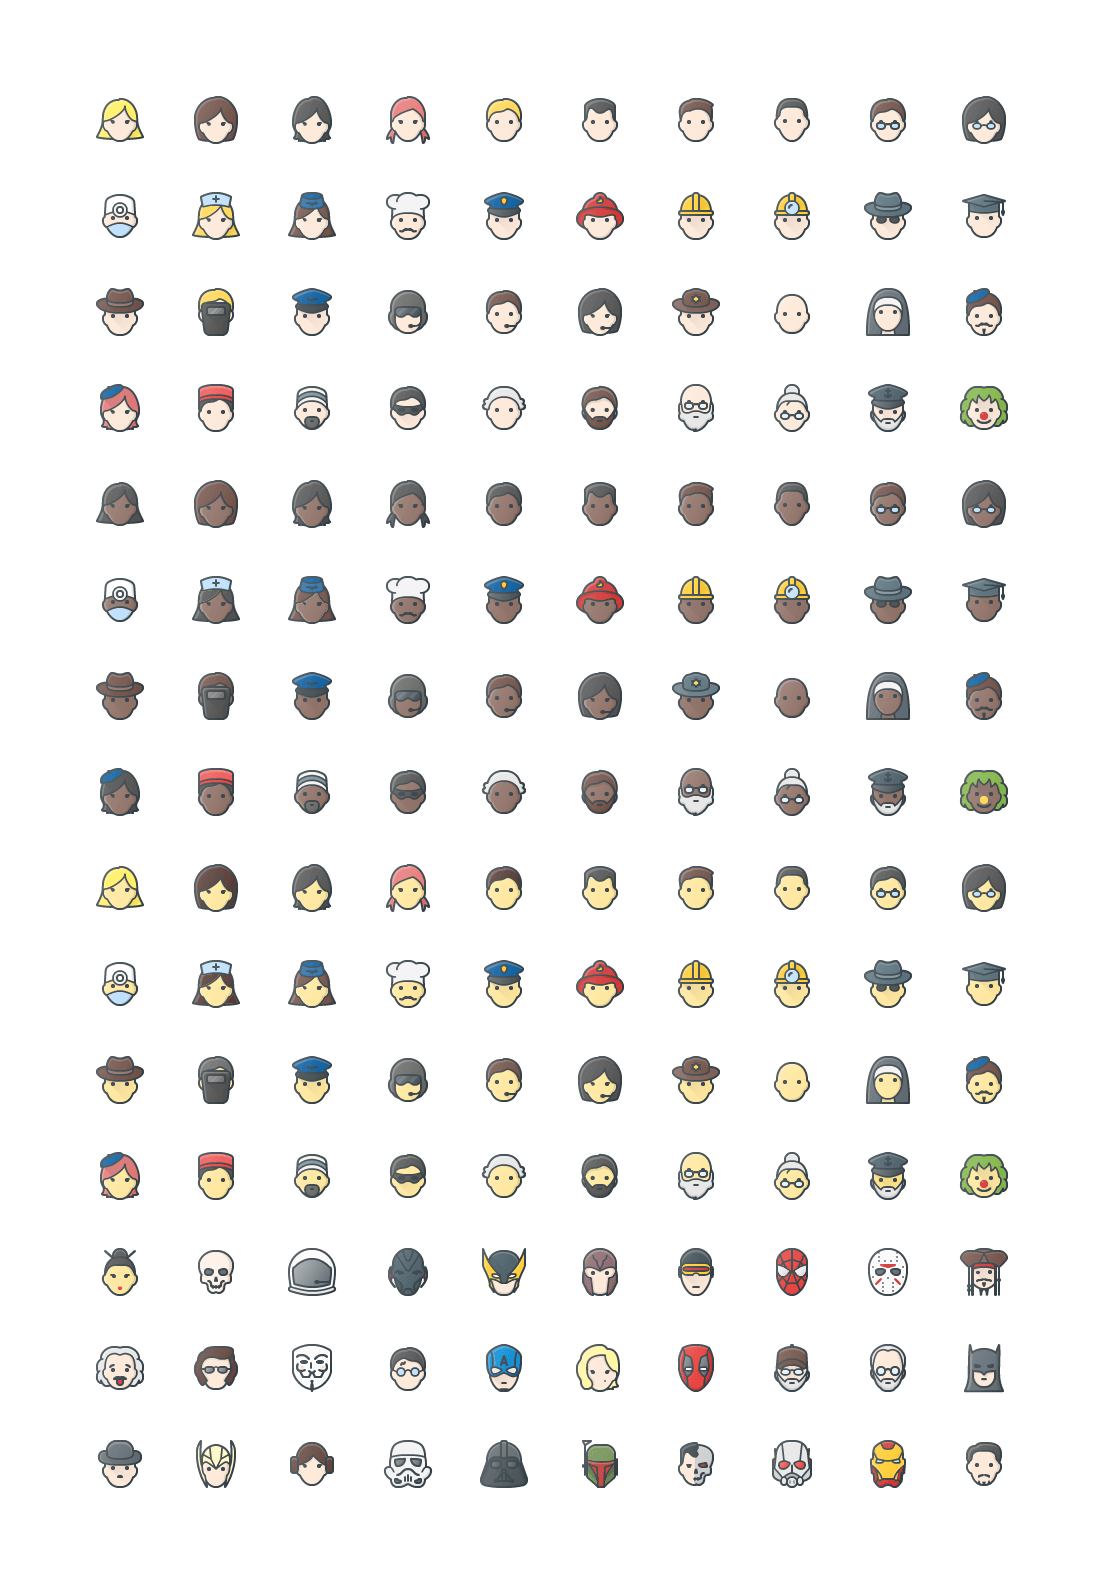 People & Avatars Colored Outline Icons